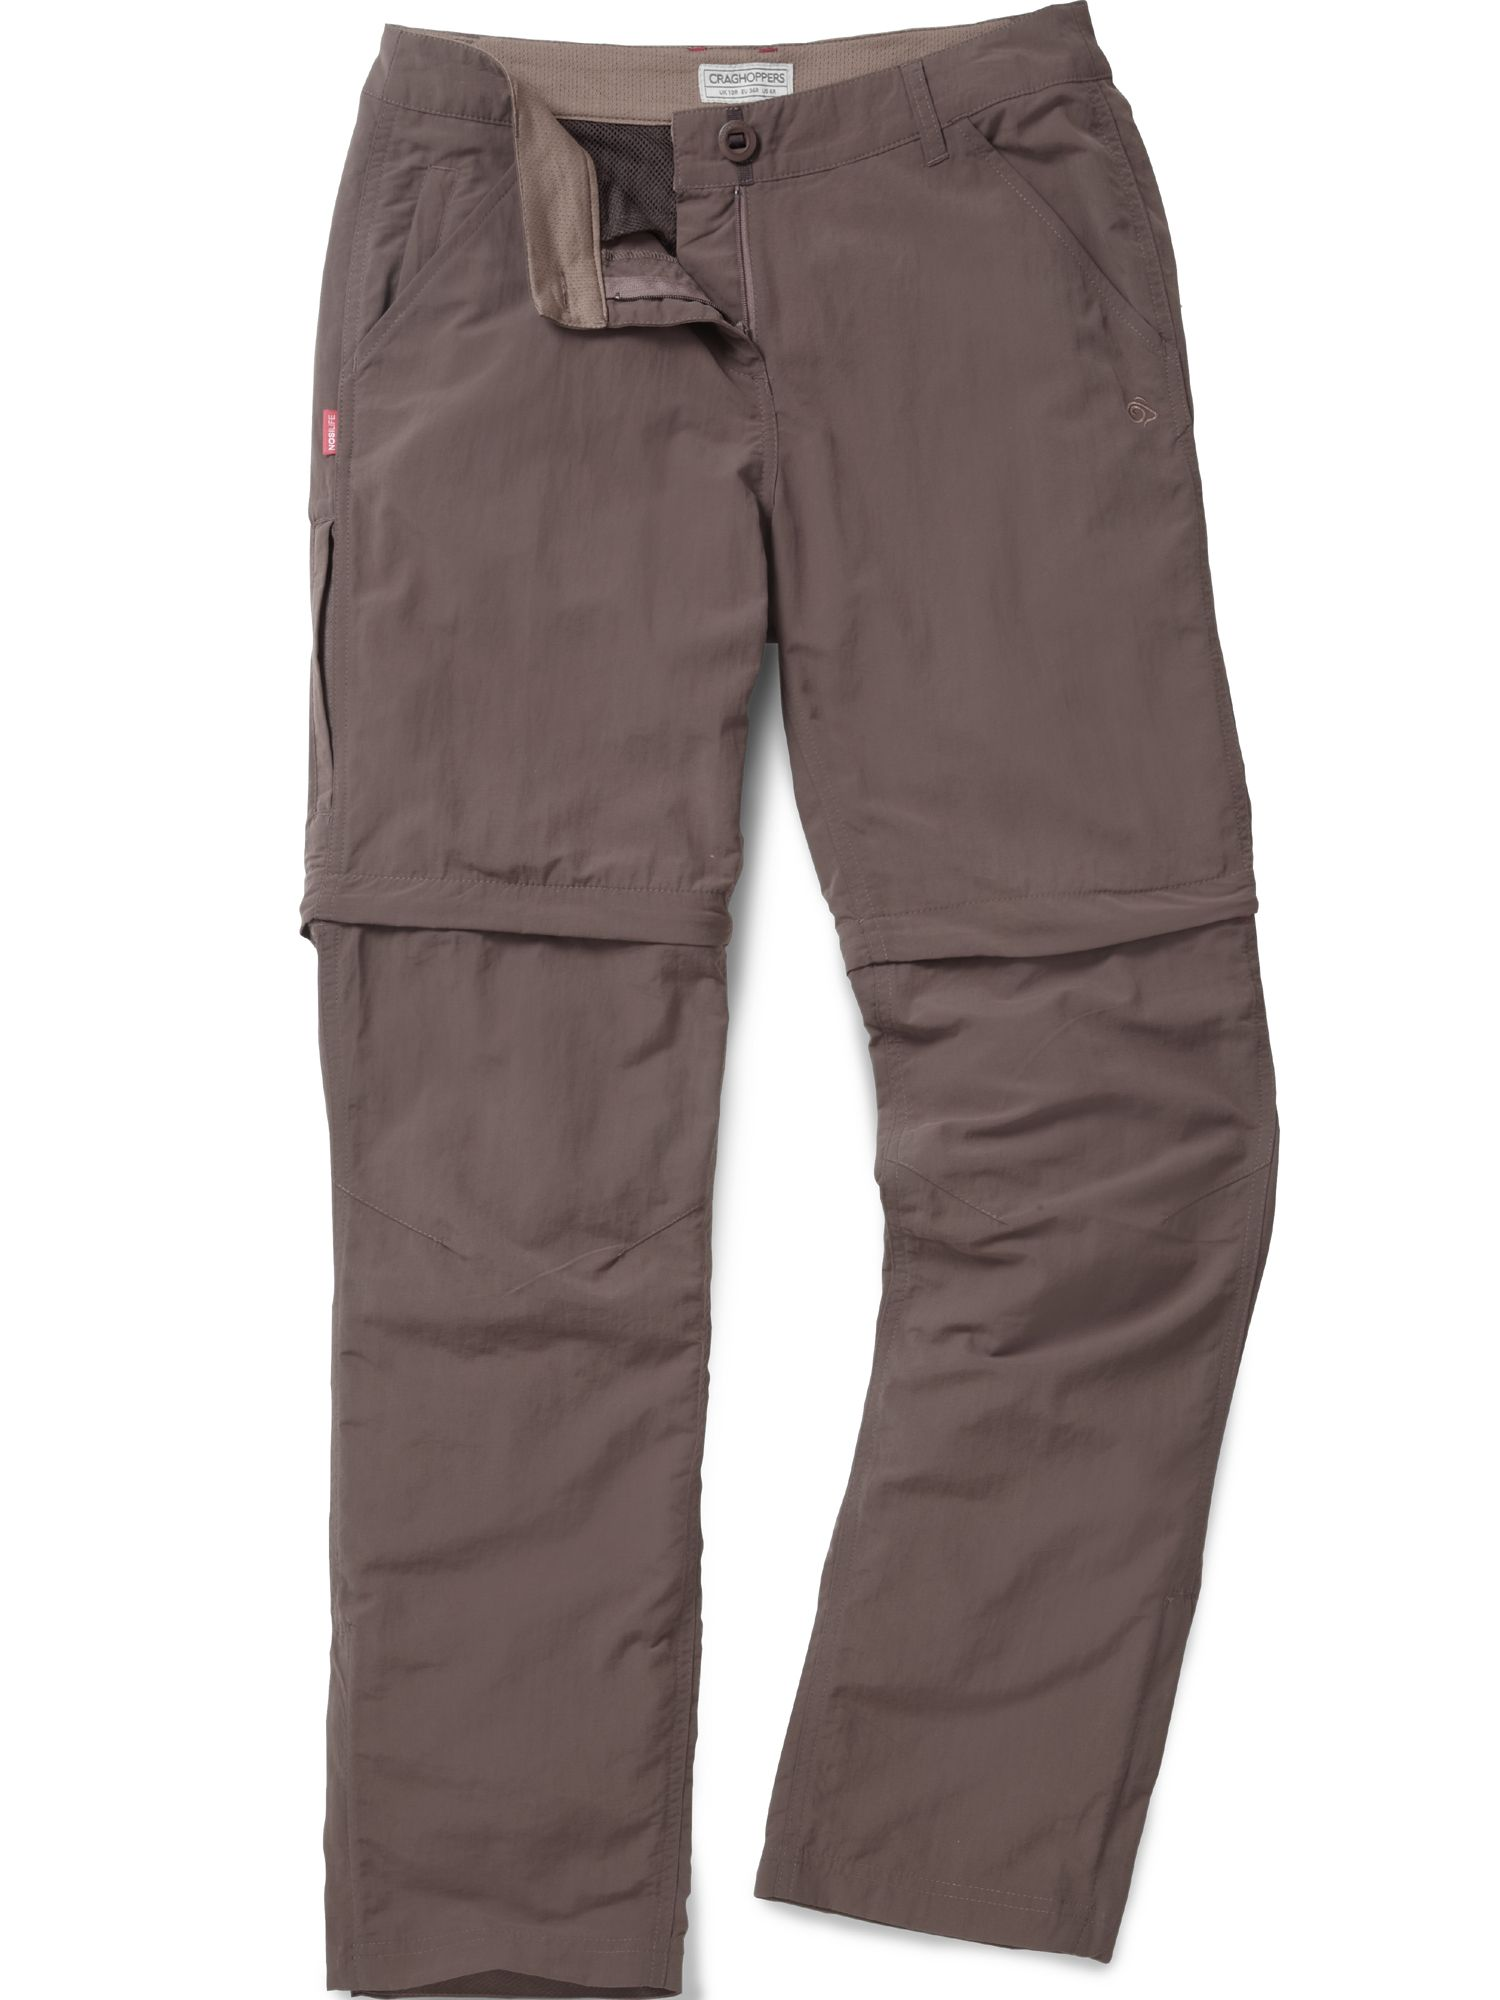 Craghoppers NosiLife Convertible Trousers, Coffee